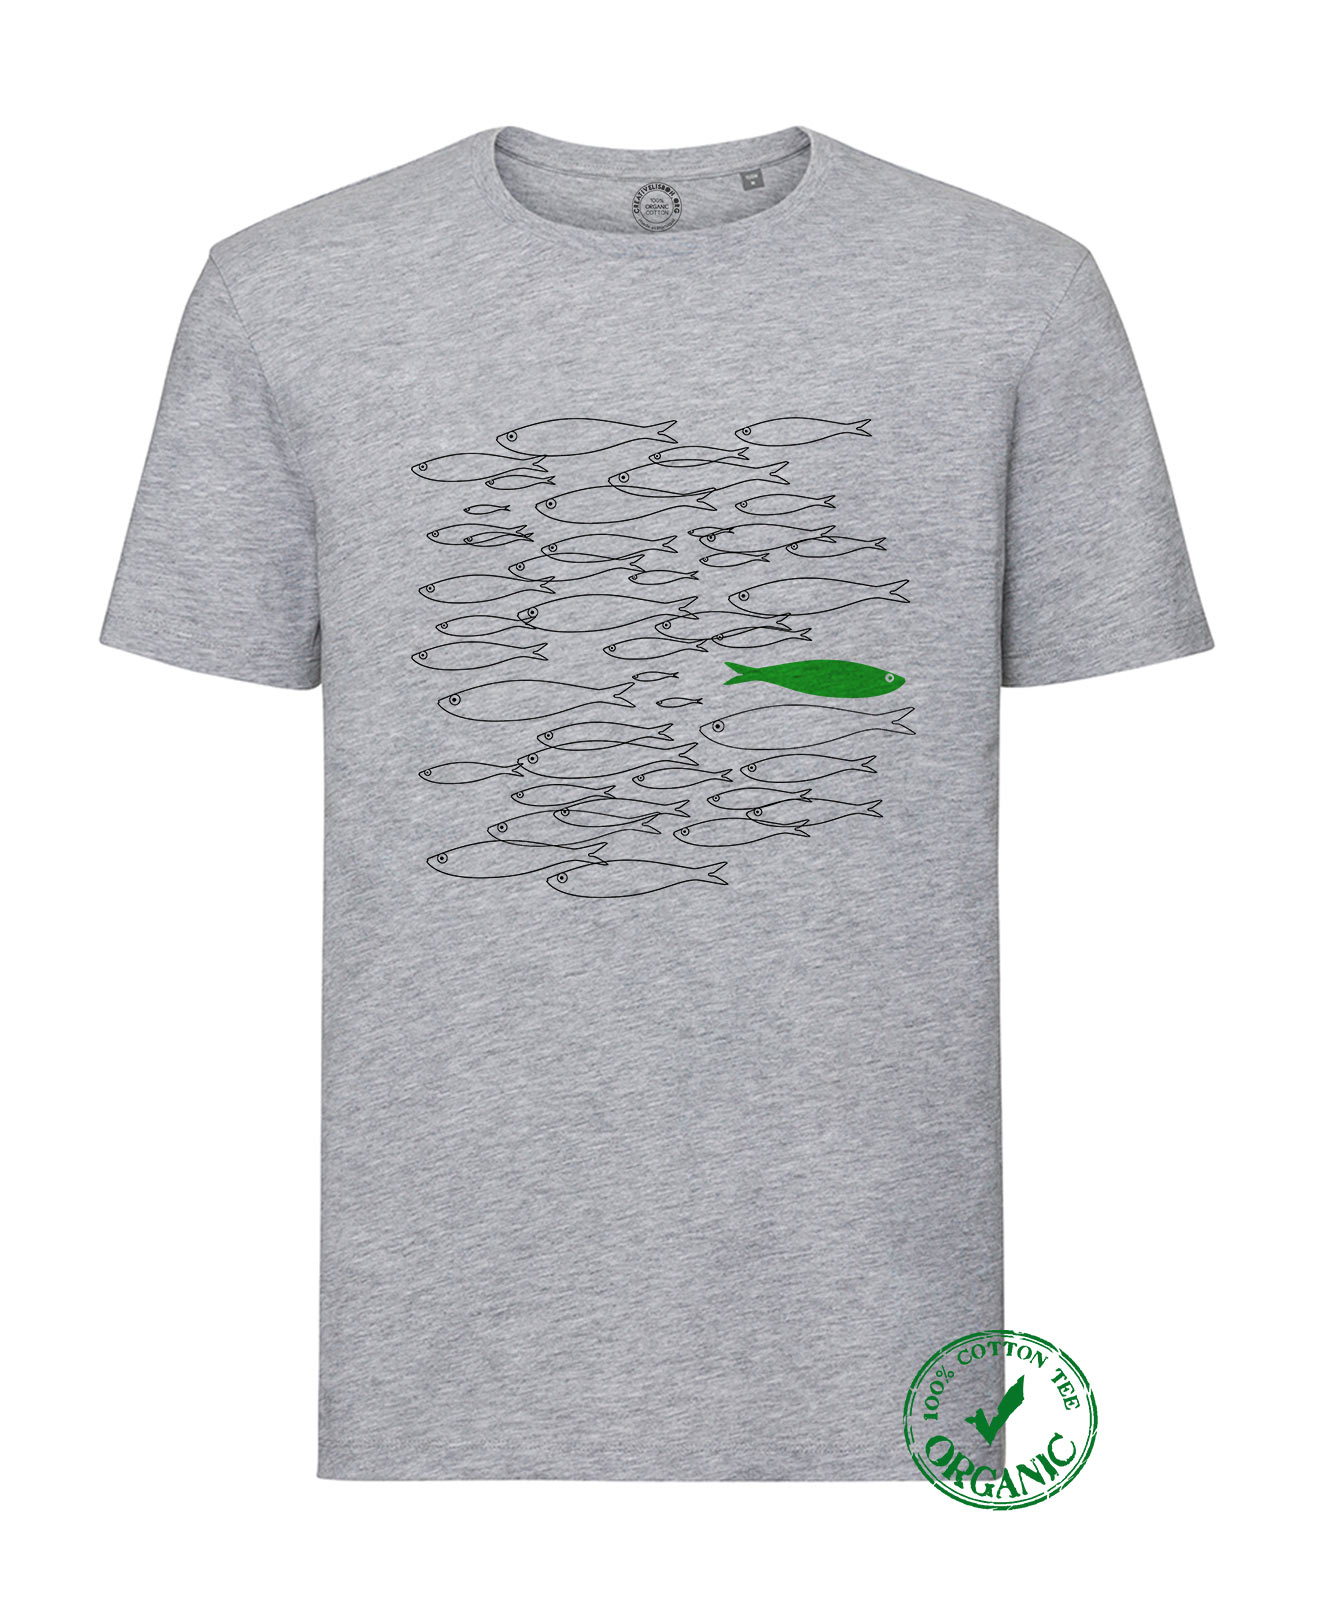 Organic Cotton Tee Green Sardine